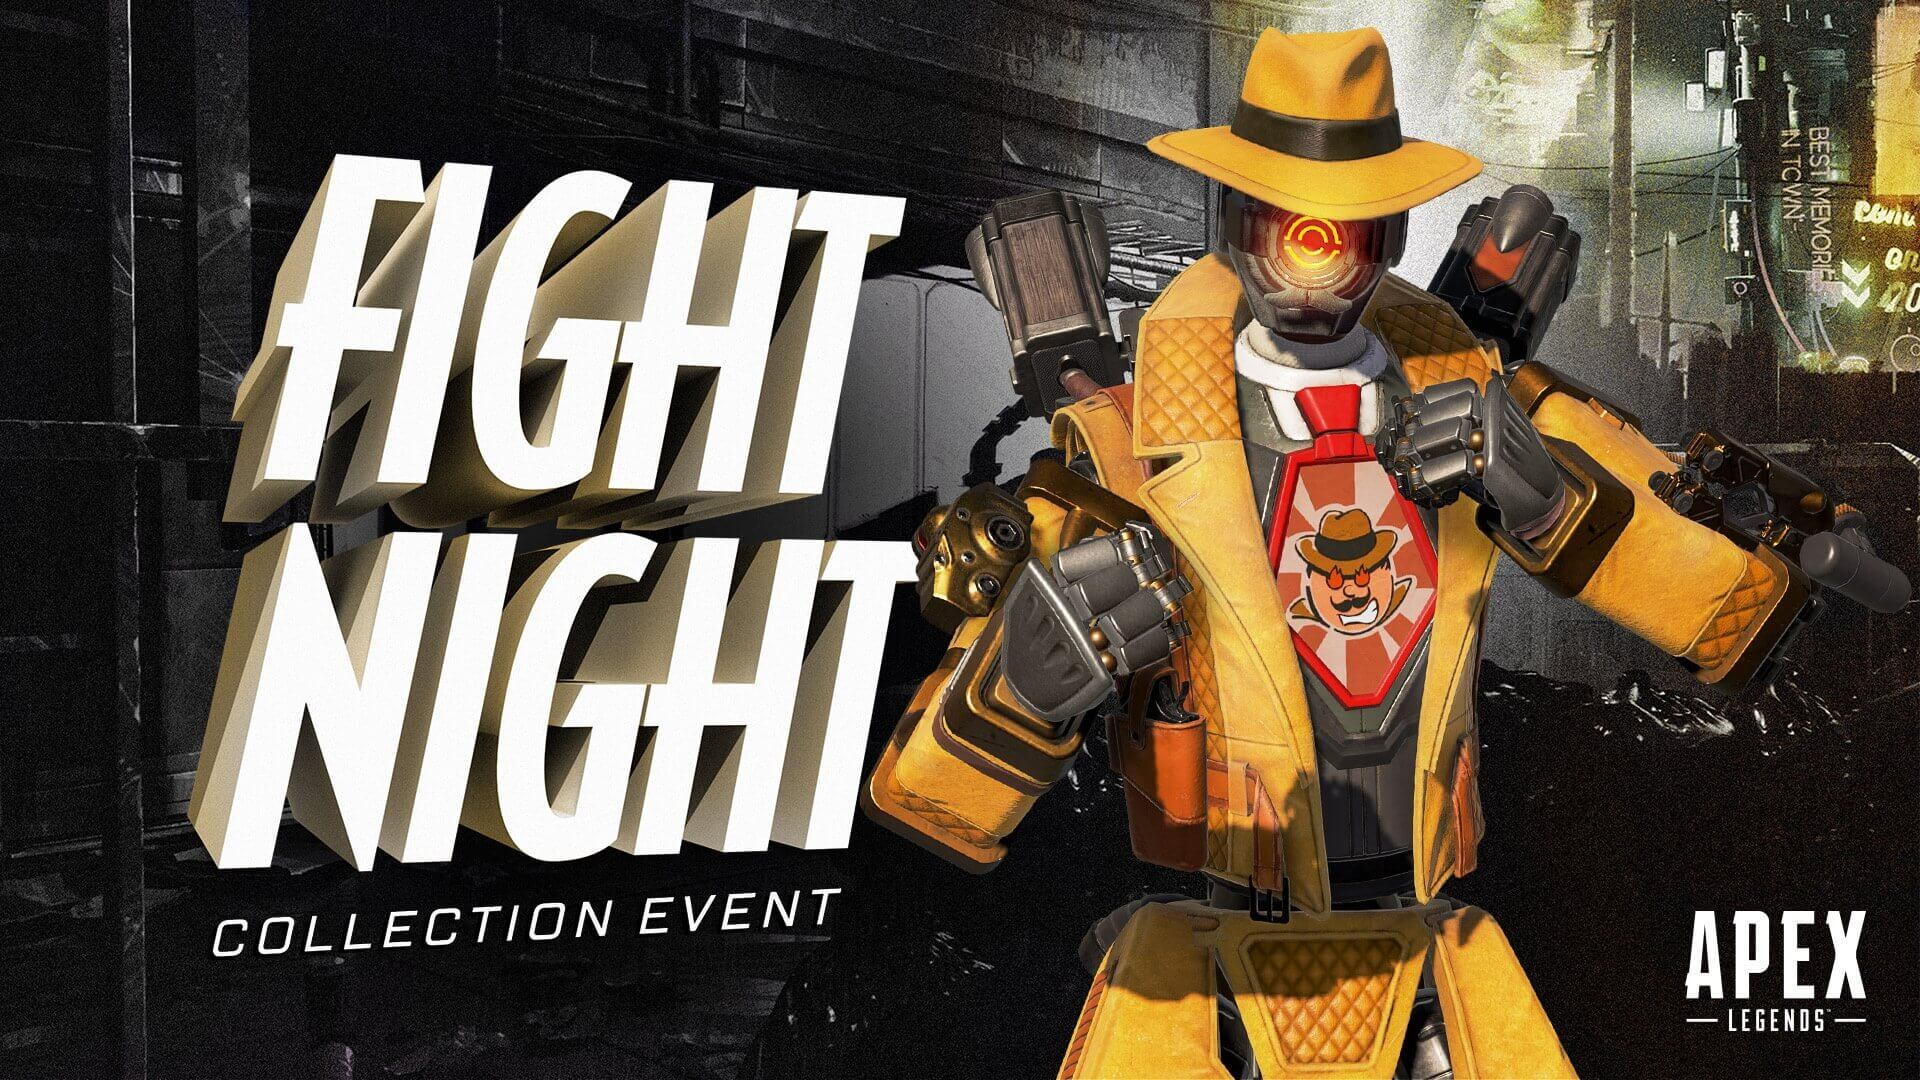 Apex Legends' New Fight Night Event Launches Today